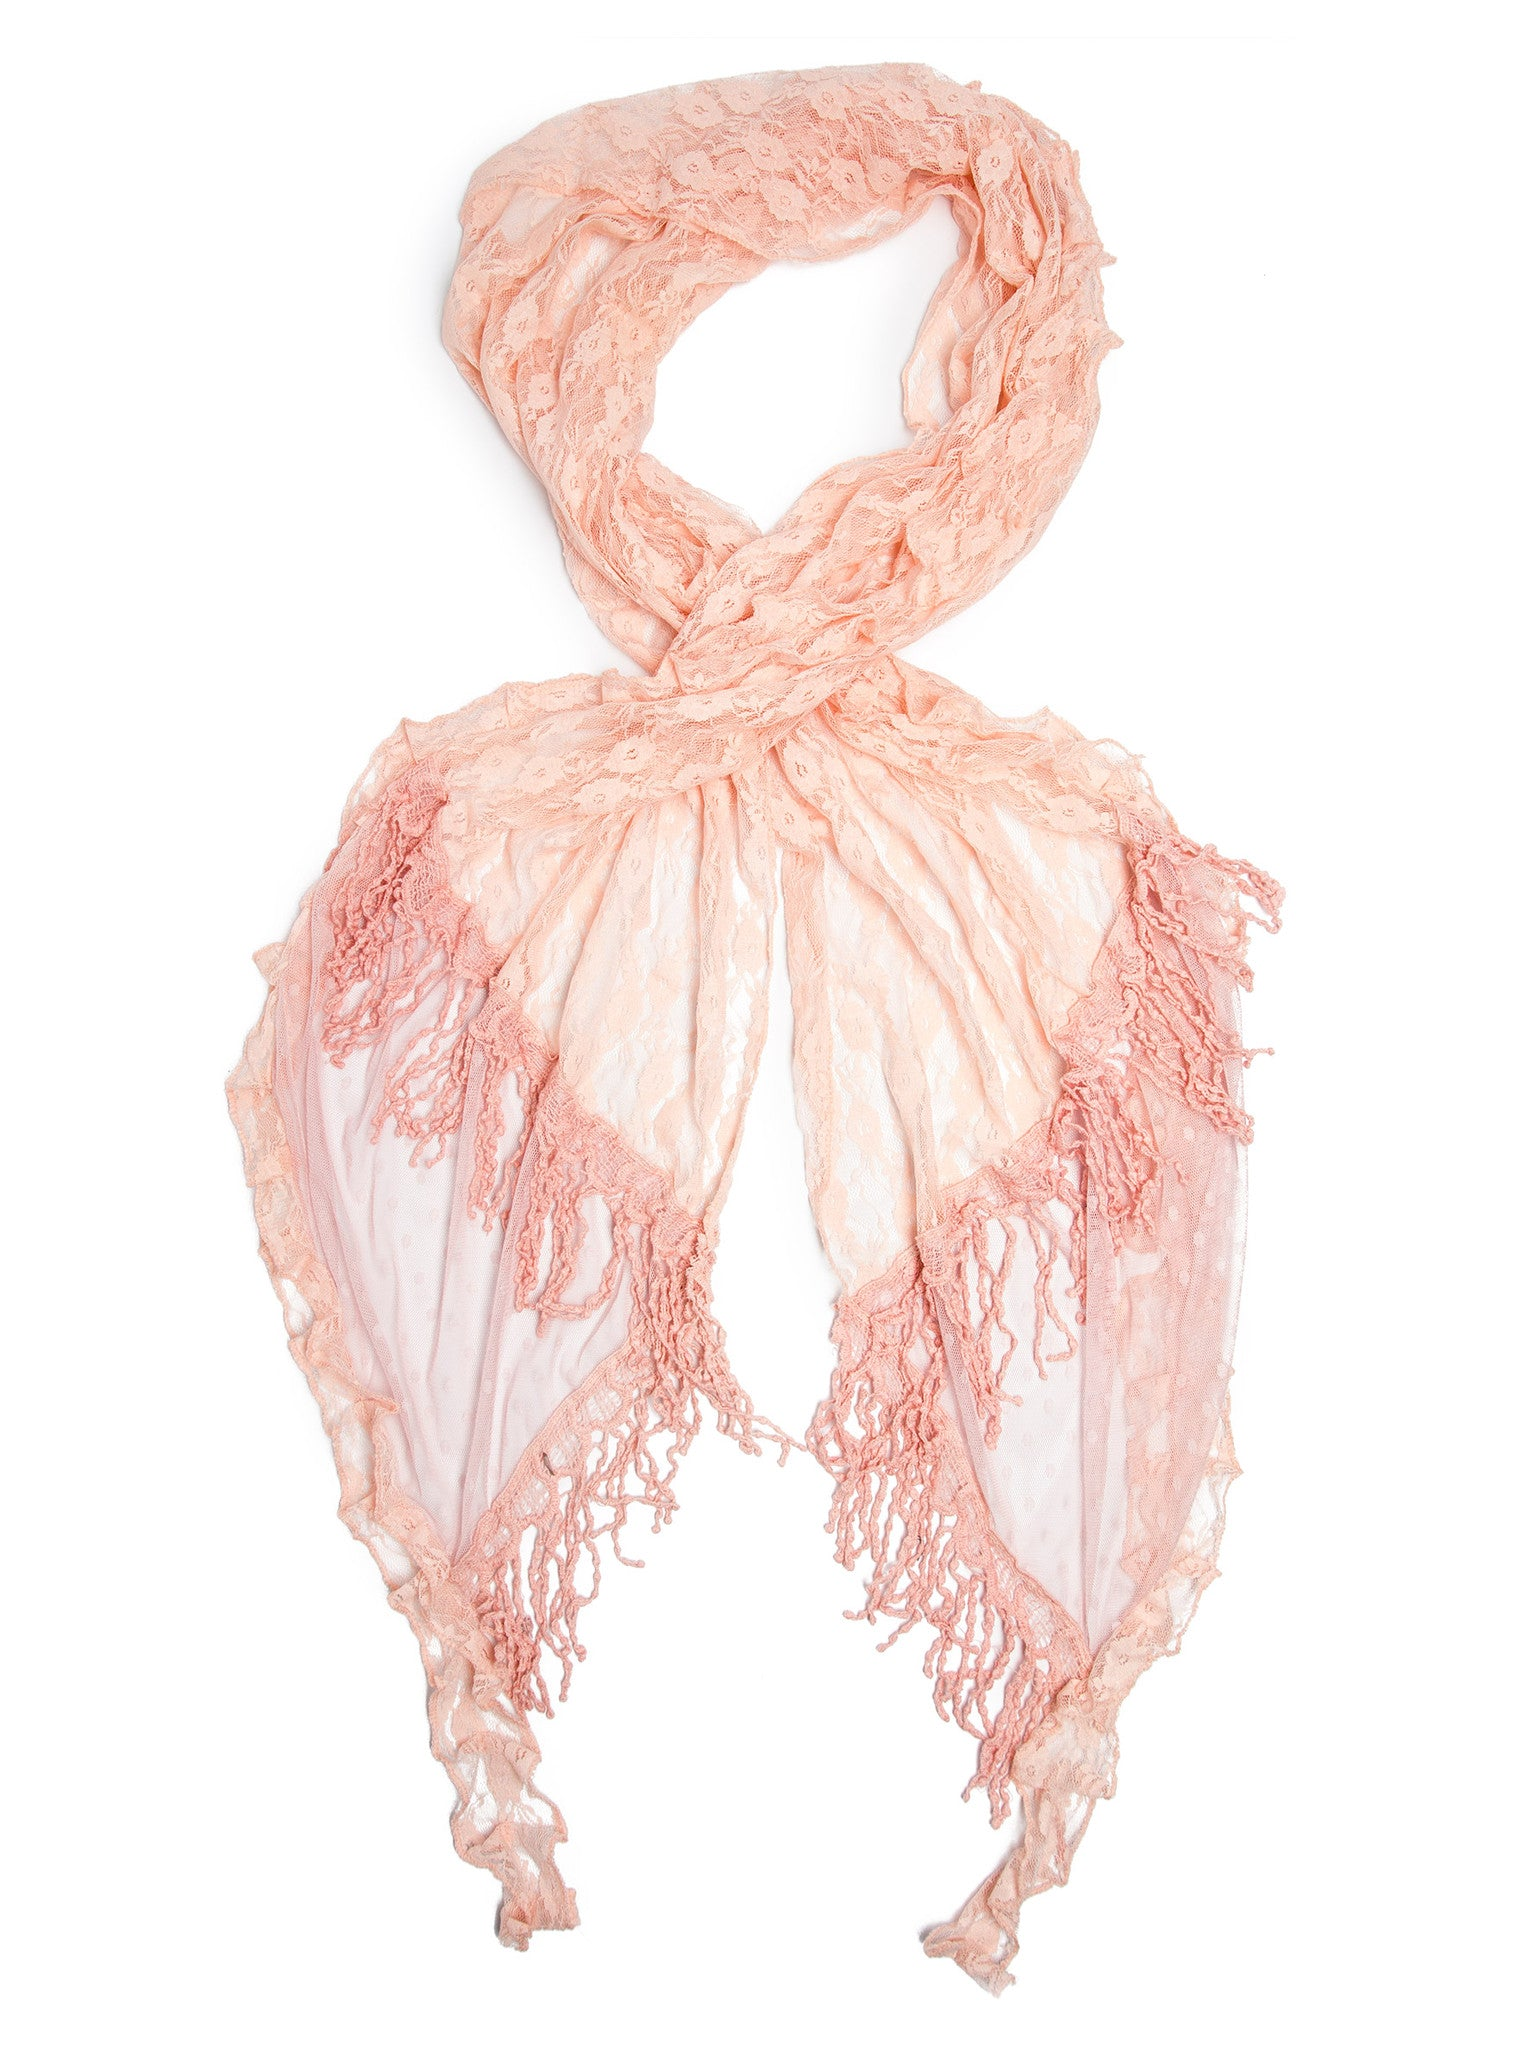 Scarves - Elise Scarf, Vintage Inspired Lace Scarf, Long Crochet Trim -(Peachy Pink / One Size) Bohomonde  - 2